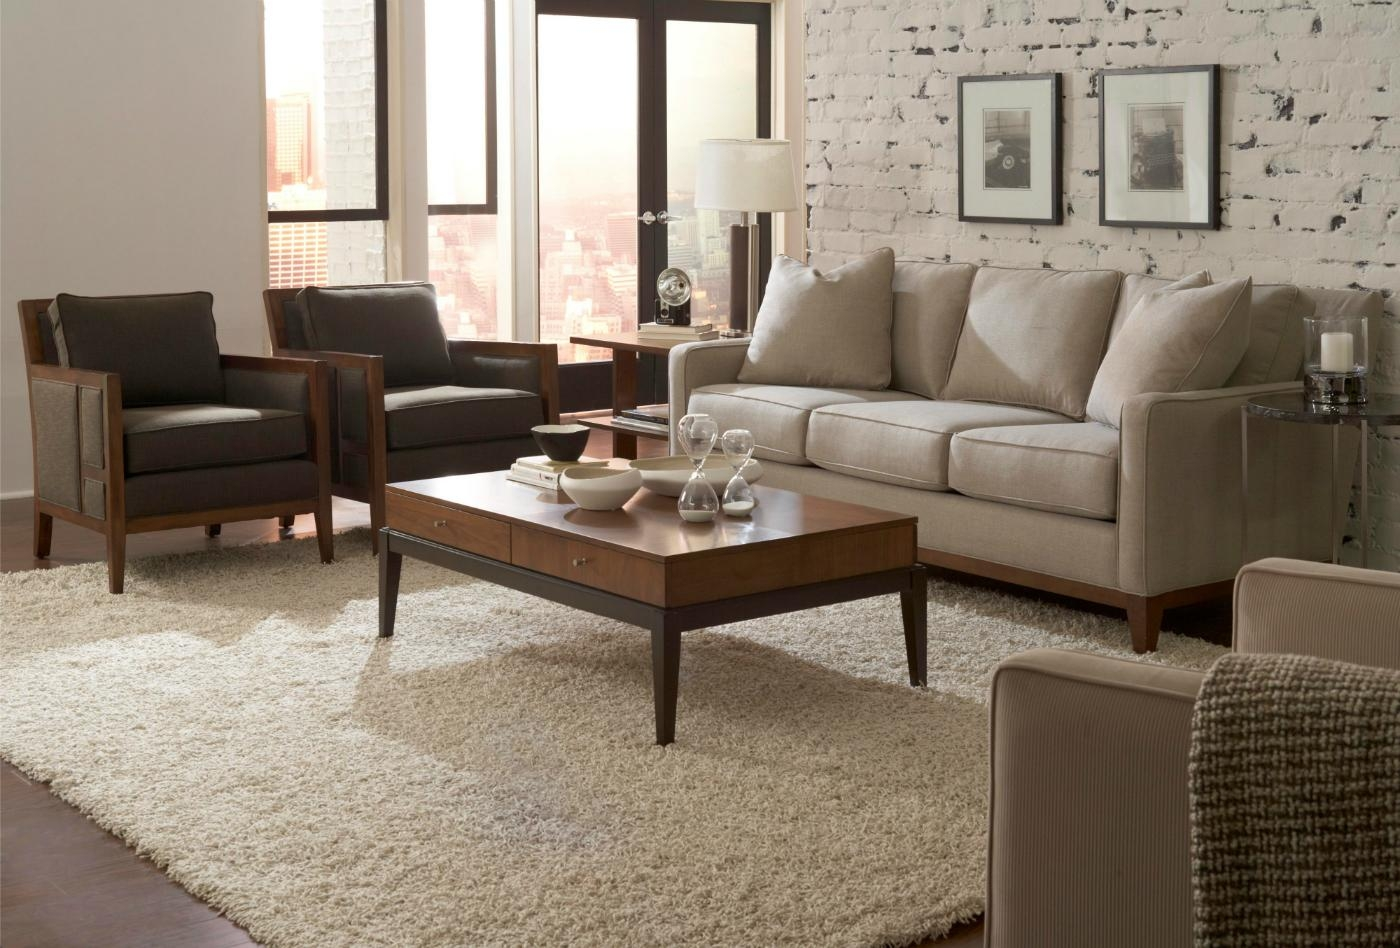 Quinn Living Room Sofa And Chairs – Chambers Furniture With Living Room Sofas And Chairs (View 10 of 20)